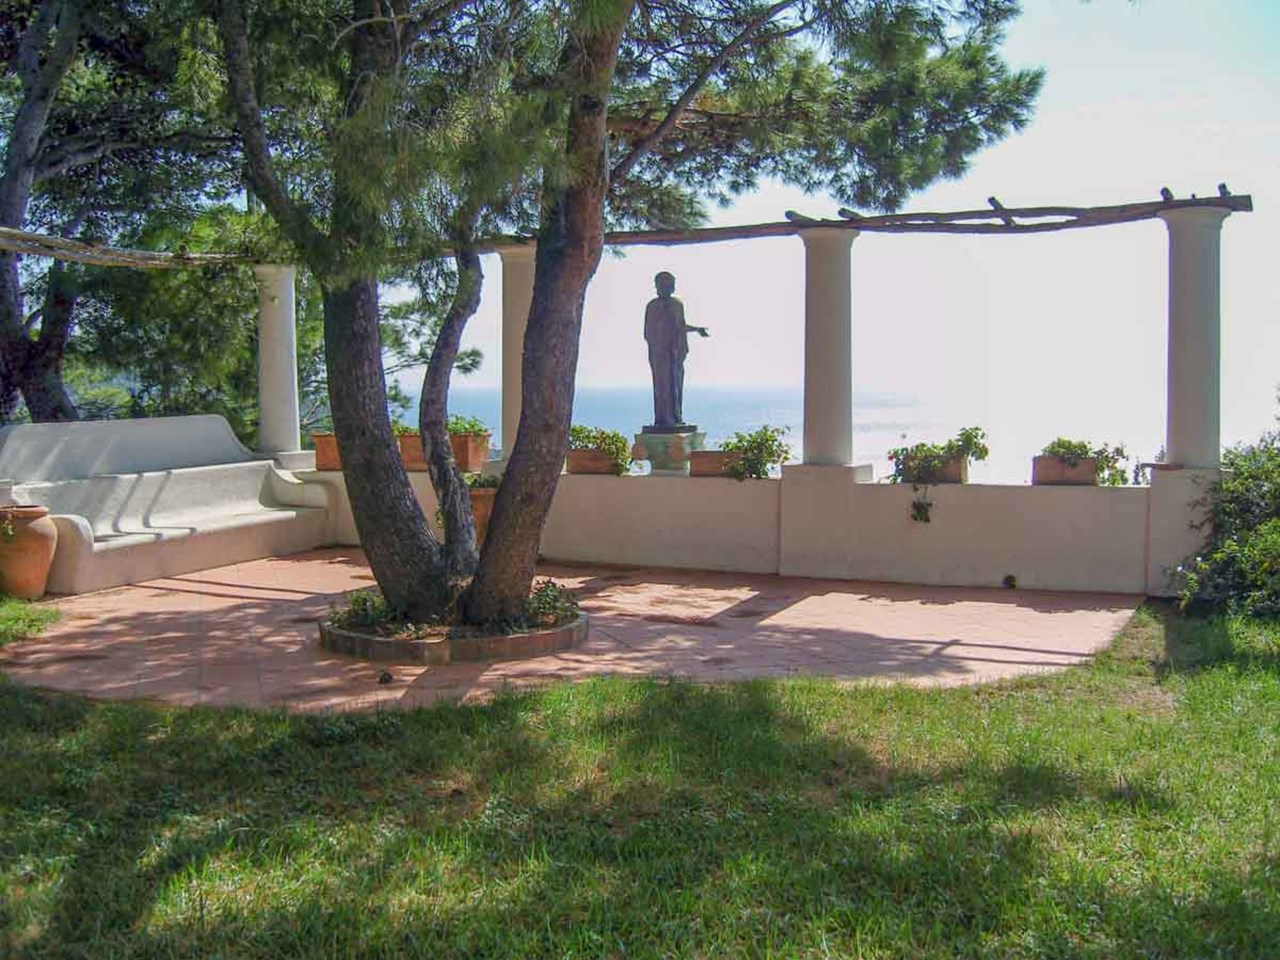 WIMCO Villas, BRV MAF, Italy, Amalfi Coast - Capri, 4 bedrooms, 4 bathrooms